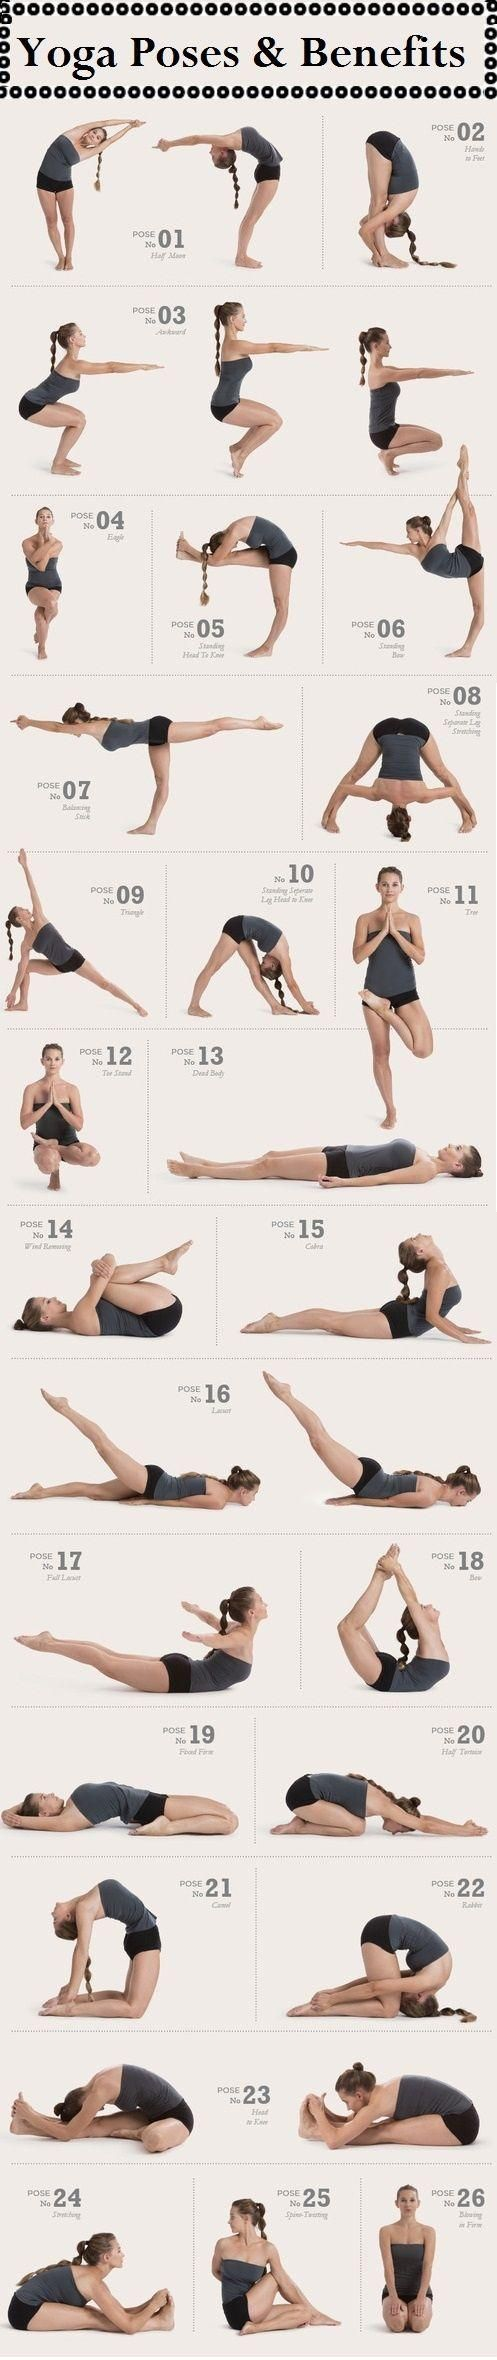 these are all my hot yoga poses